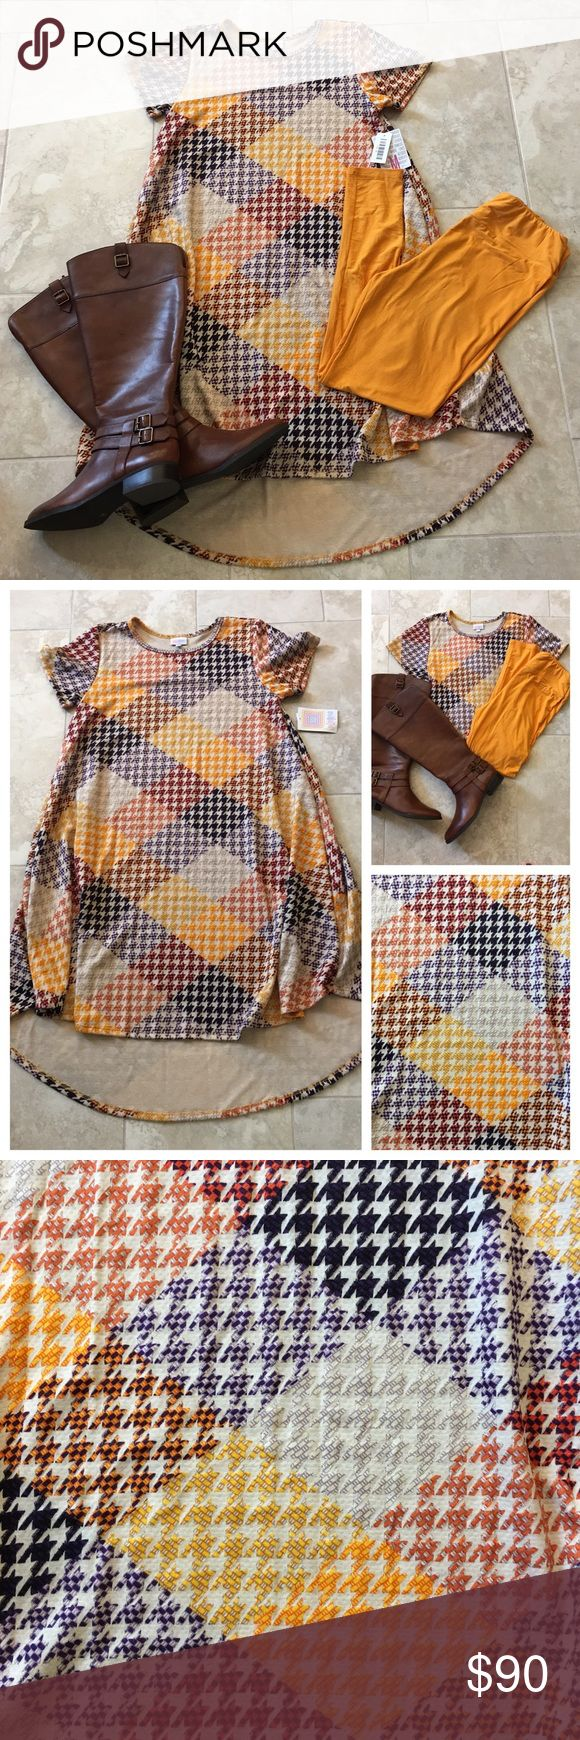 LuLaRoe Fall Patterned Carly & Leggings Carly in fall unicorn print  🦄 , size medium, NWT. Mustard leggings, size TC, made in China, NWOT (never worn, never tried in). Sold as a set. LuLaRoe Other